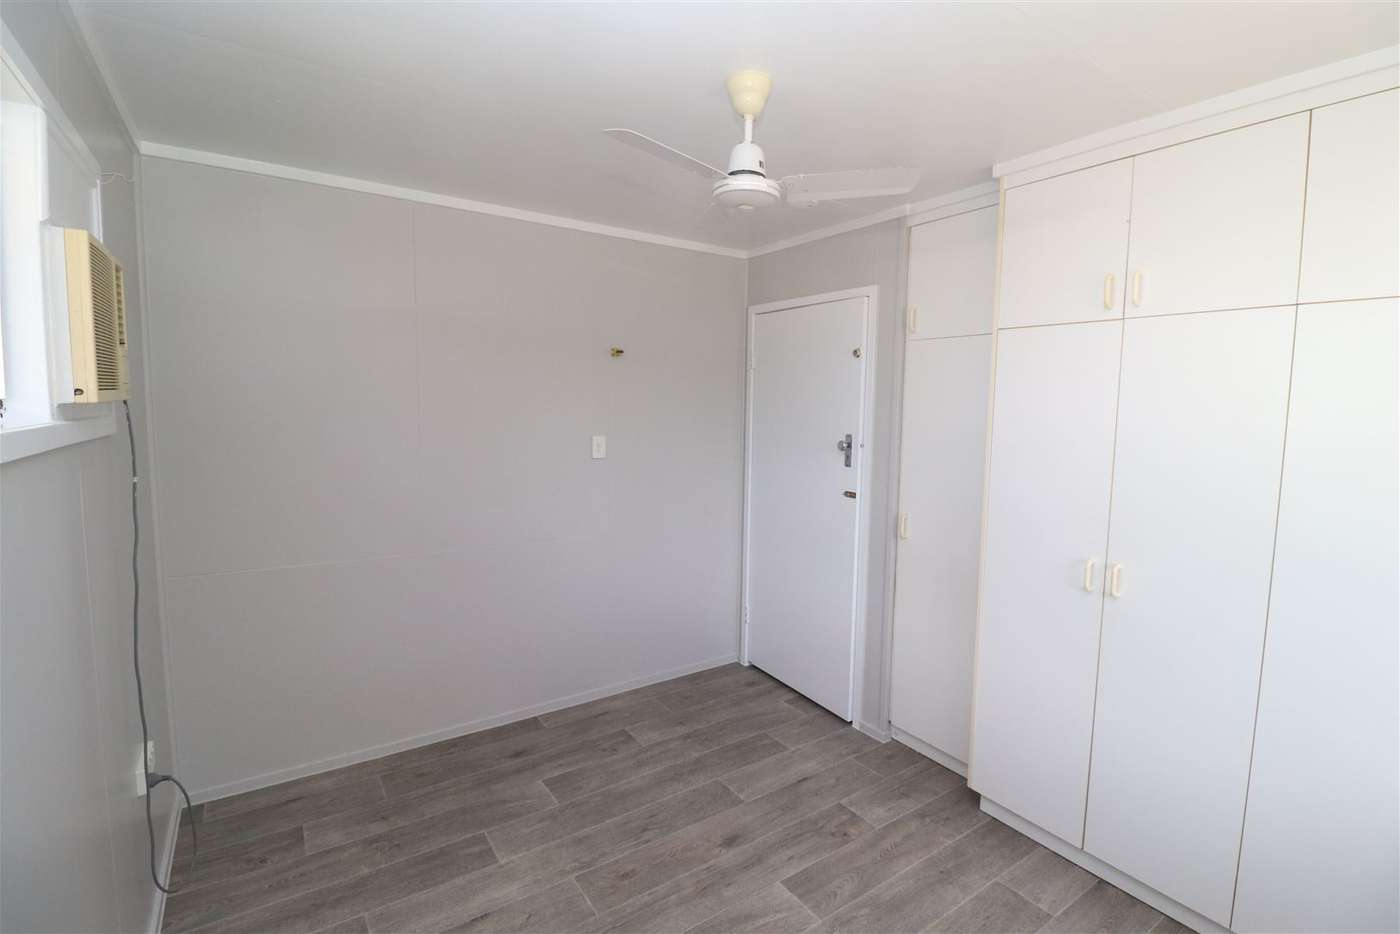 Seventh view of Homely house listing, 4 Catherine Street, Ayr QLD 4807